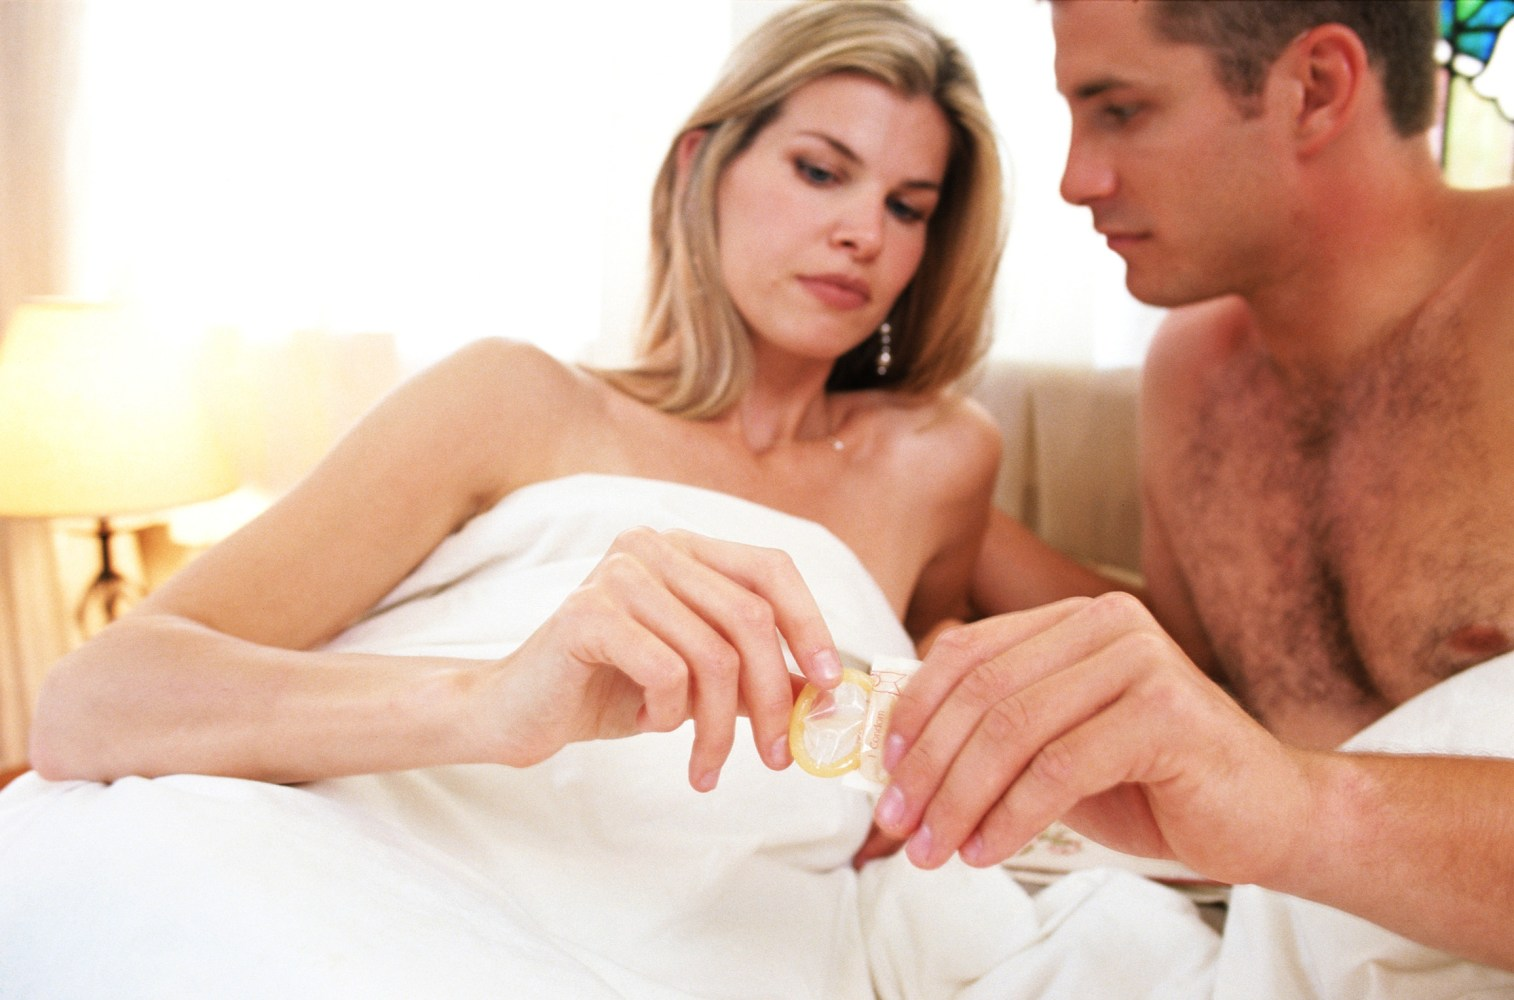 A Third of US Men Use Condoms, But Not Every Time